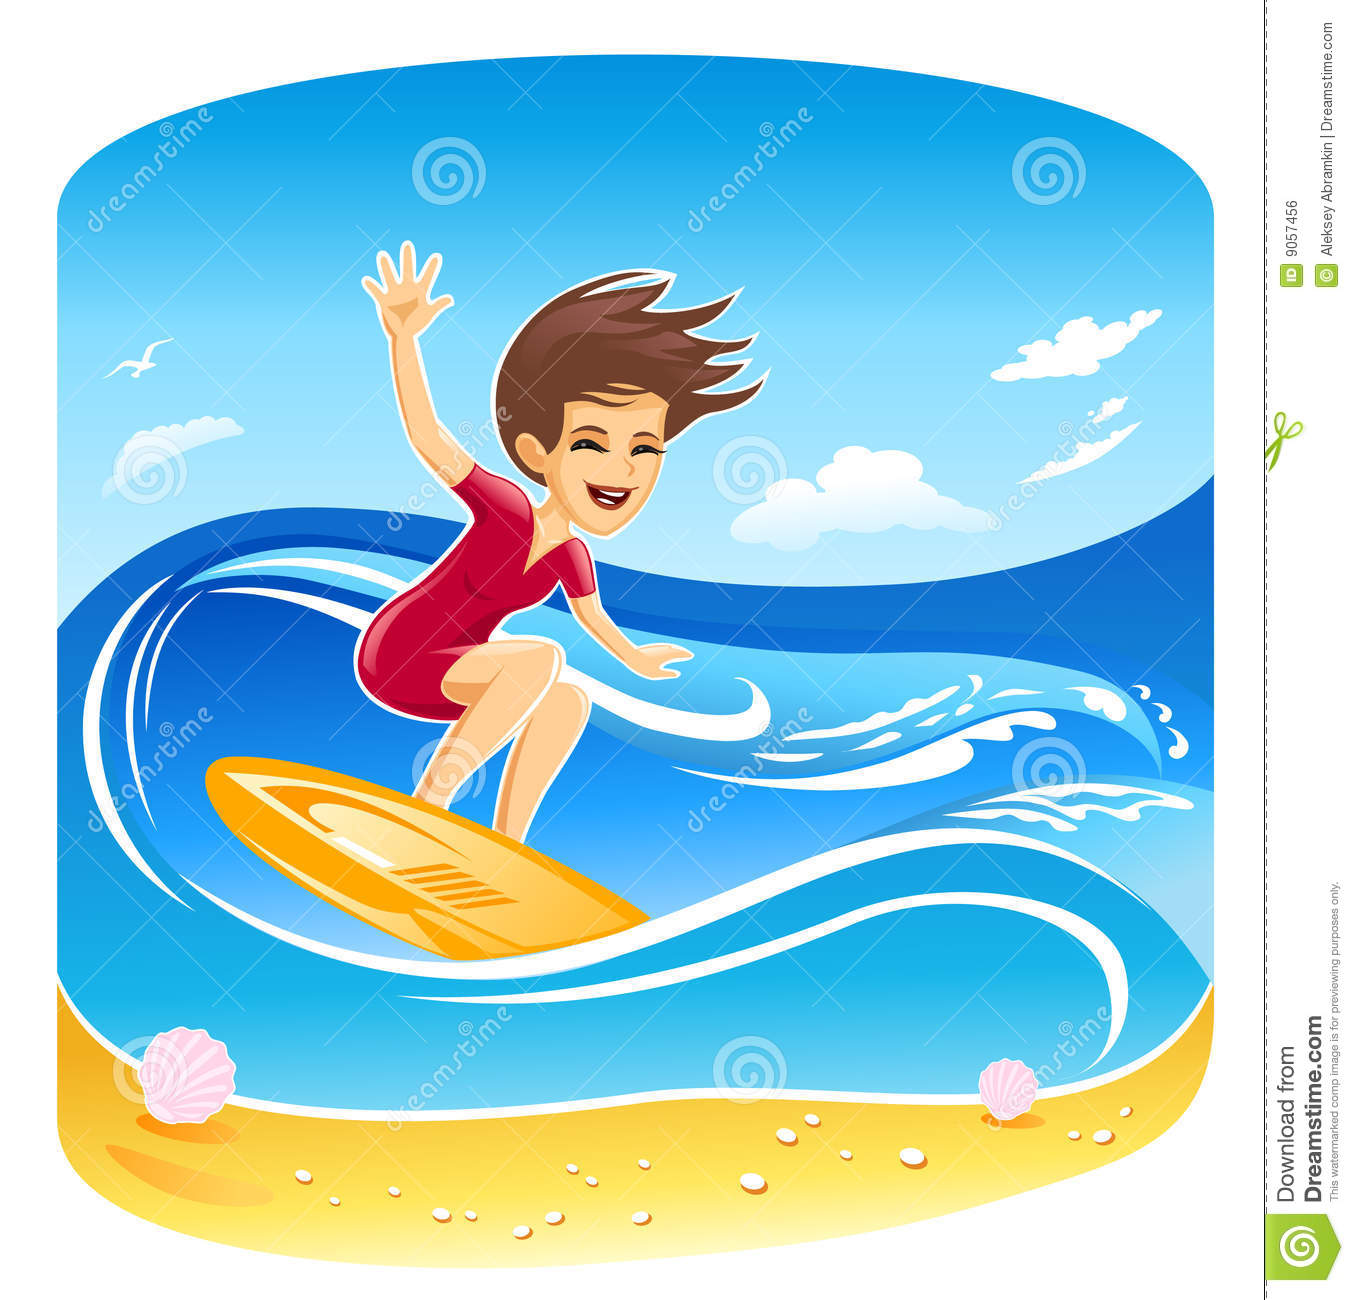 hight resolution of surf clipart free 6